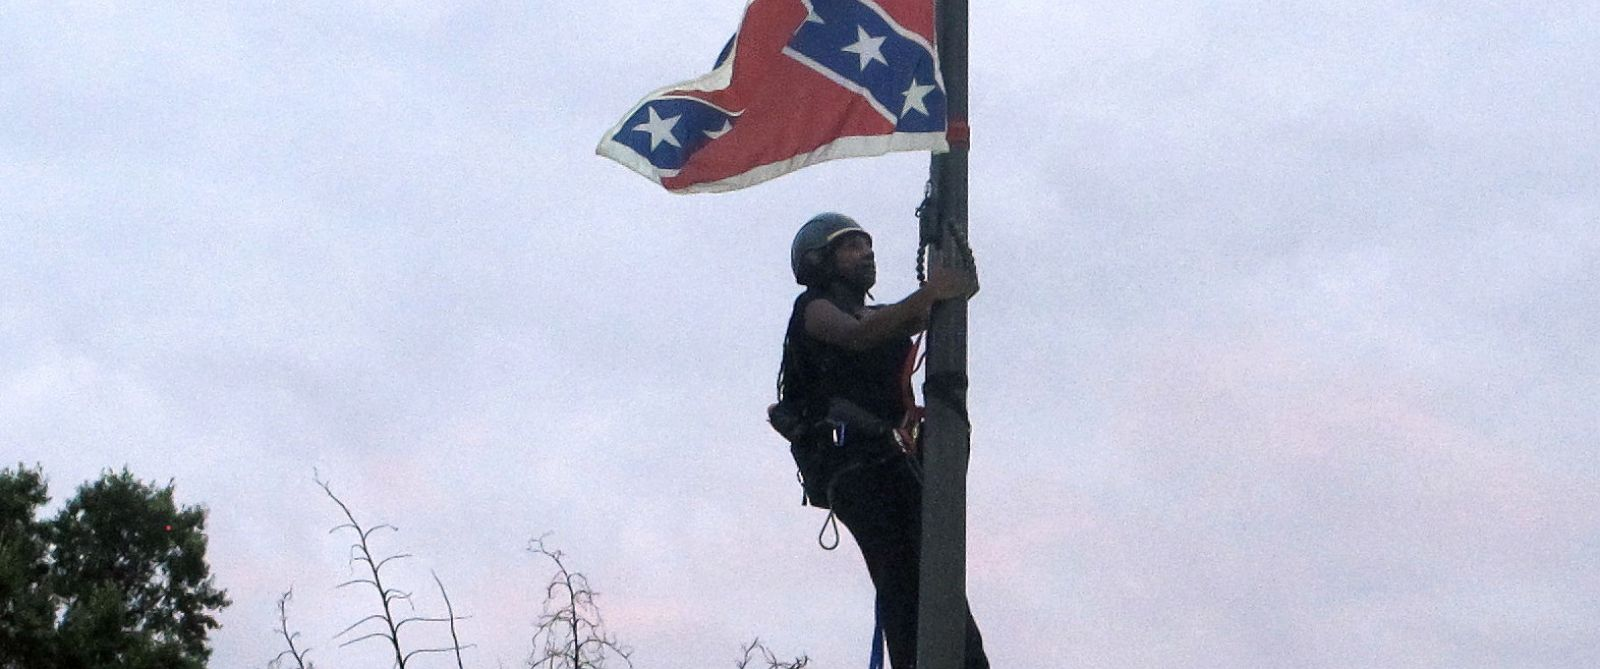 PHOTO: Bree Newsome of Charlotte, N.C., climbs a flagpole to remove the Confederate battle flag at a Confederate monument in front of the Statehouse, June, 27, 2015, in Columbia, S.C.